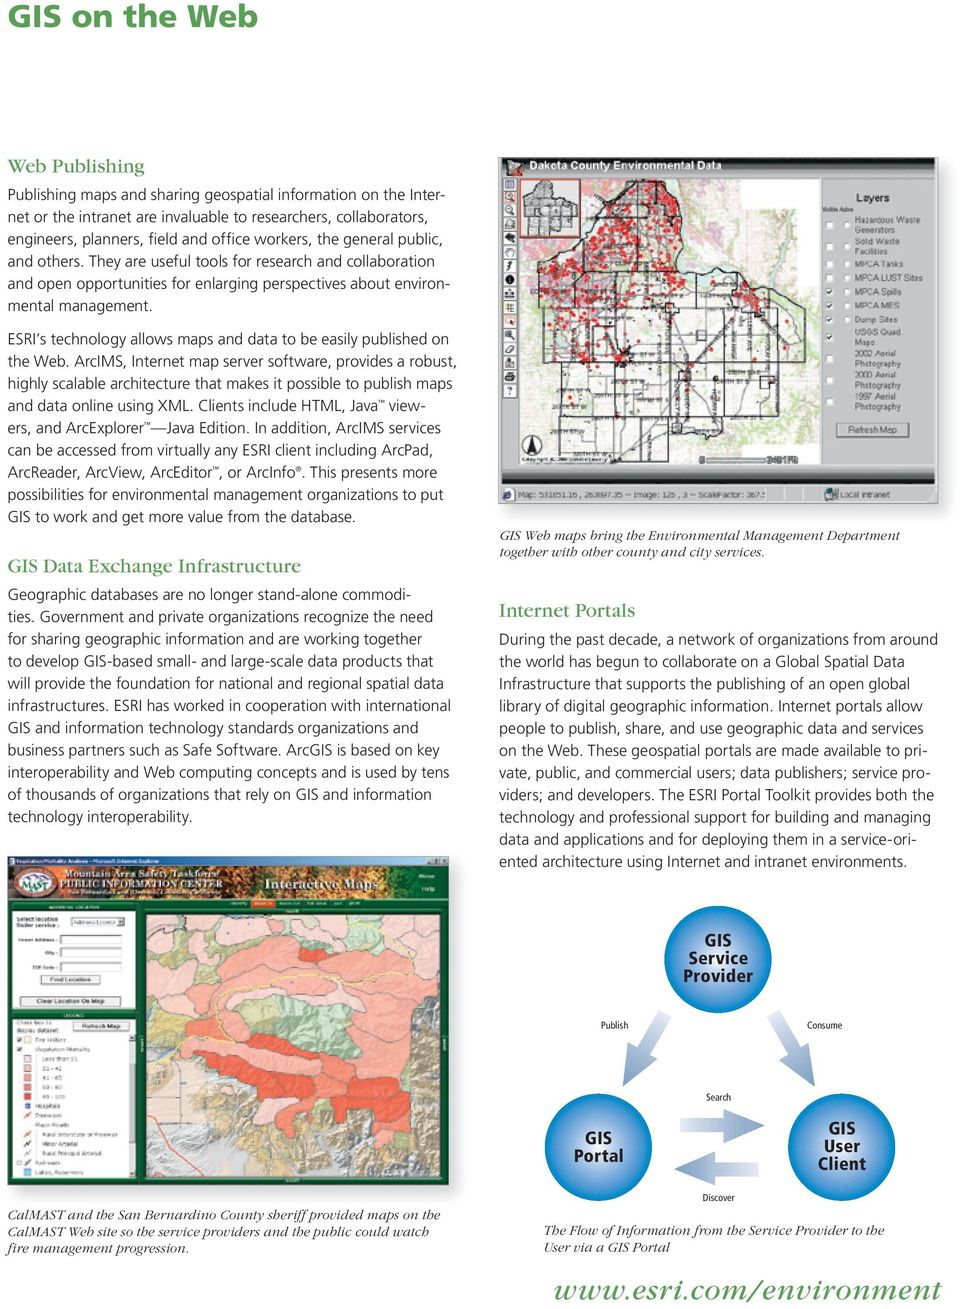 ESRI s technology allows maps and data to be easily published on the Web.